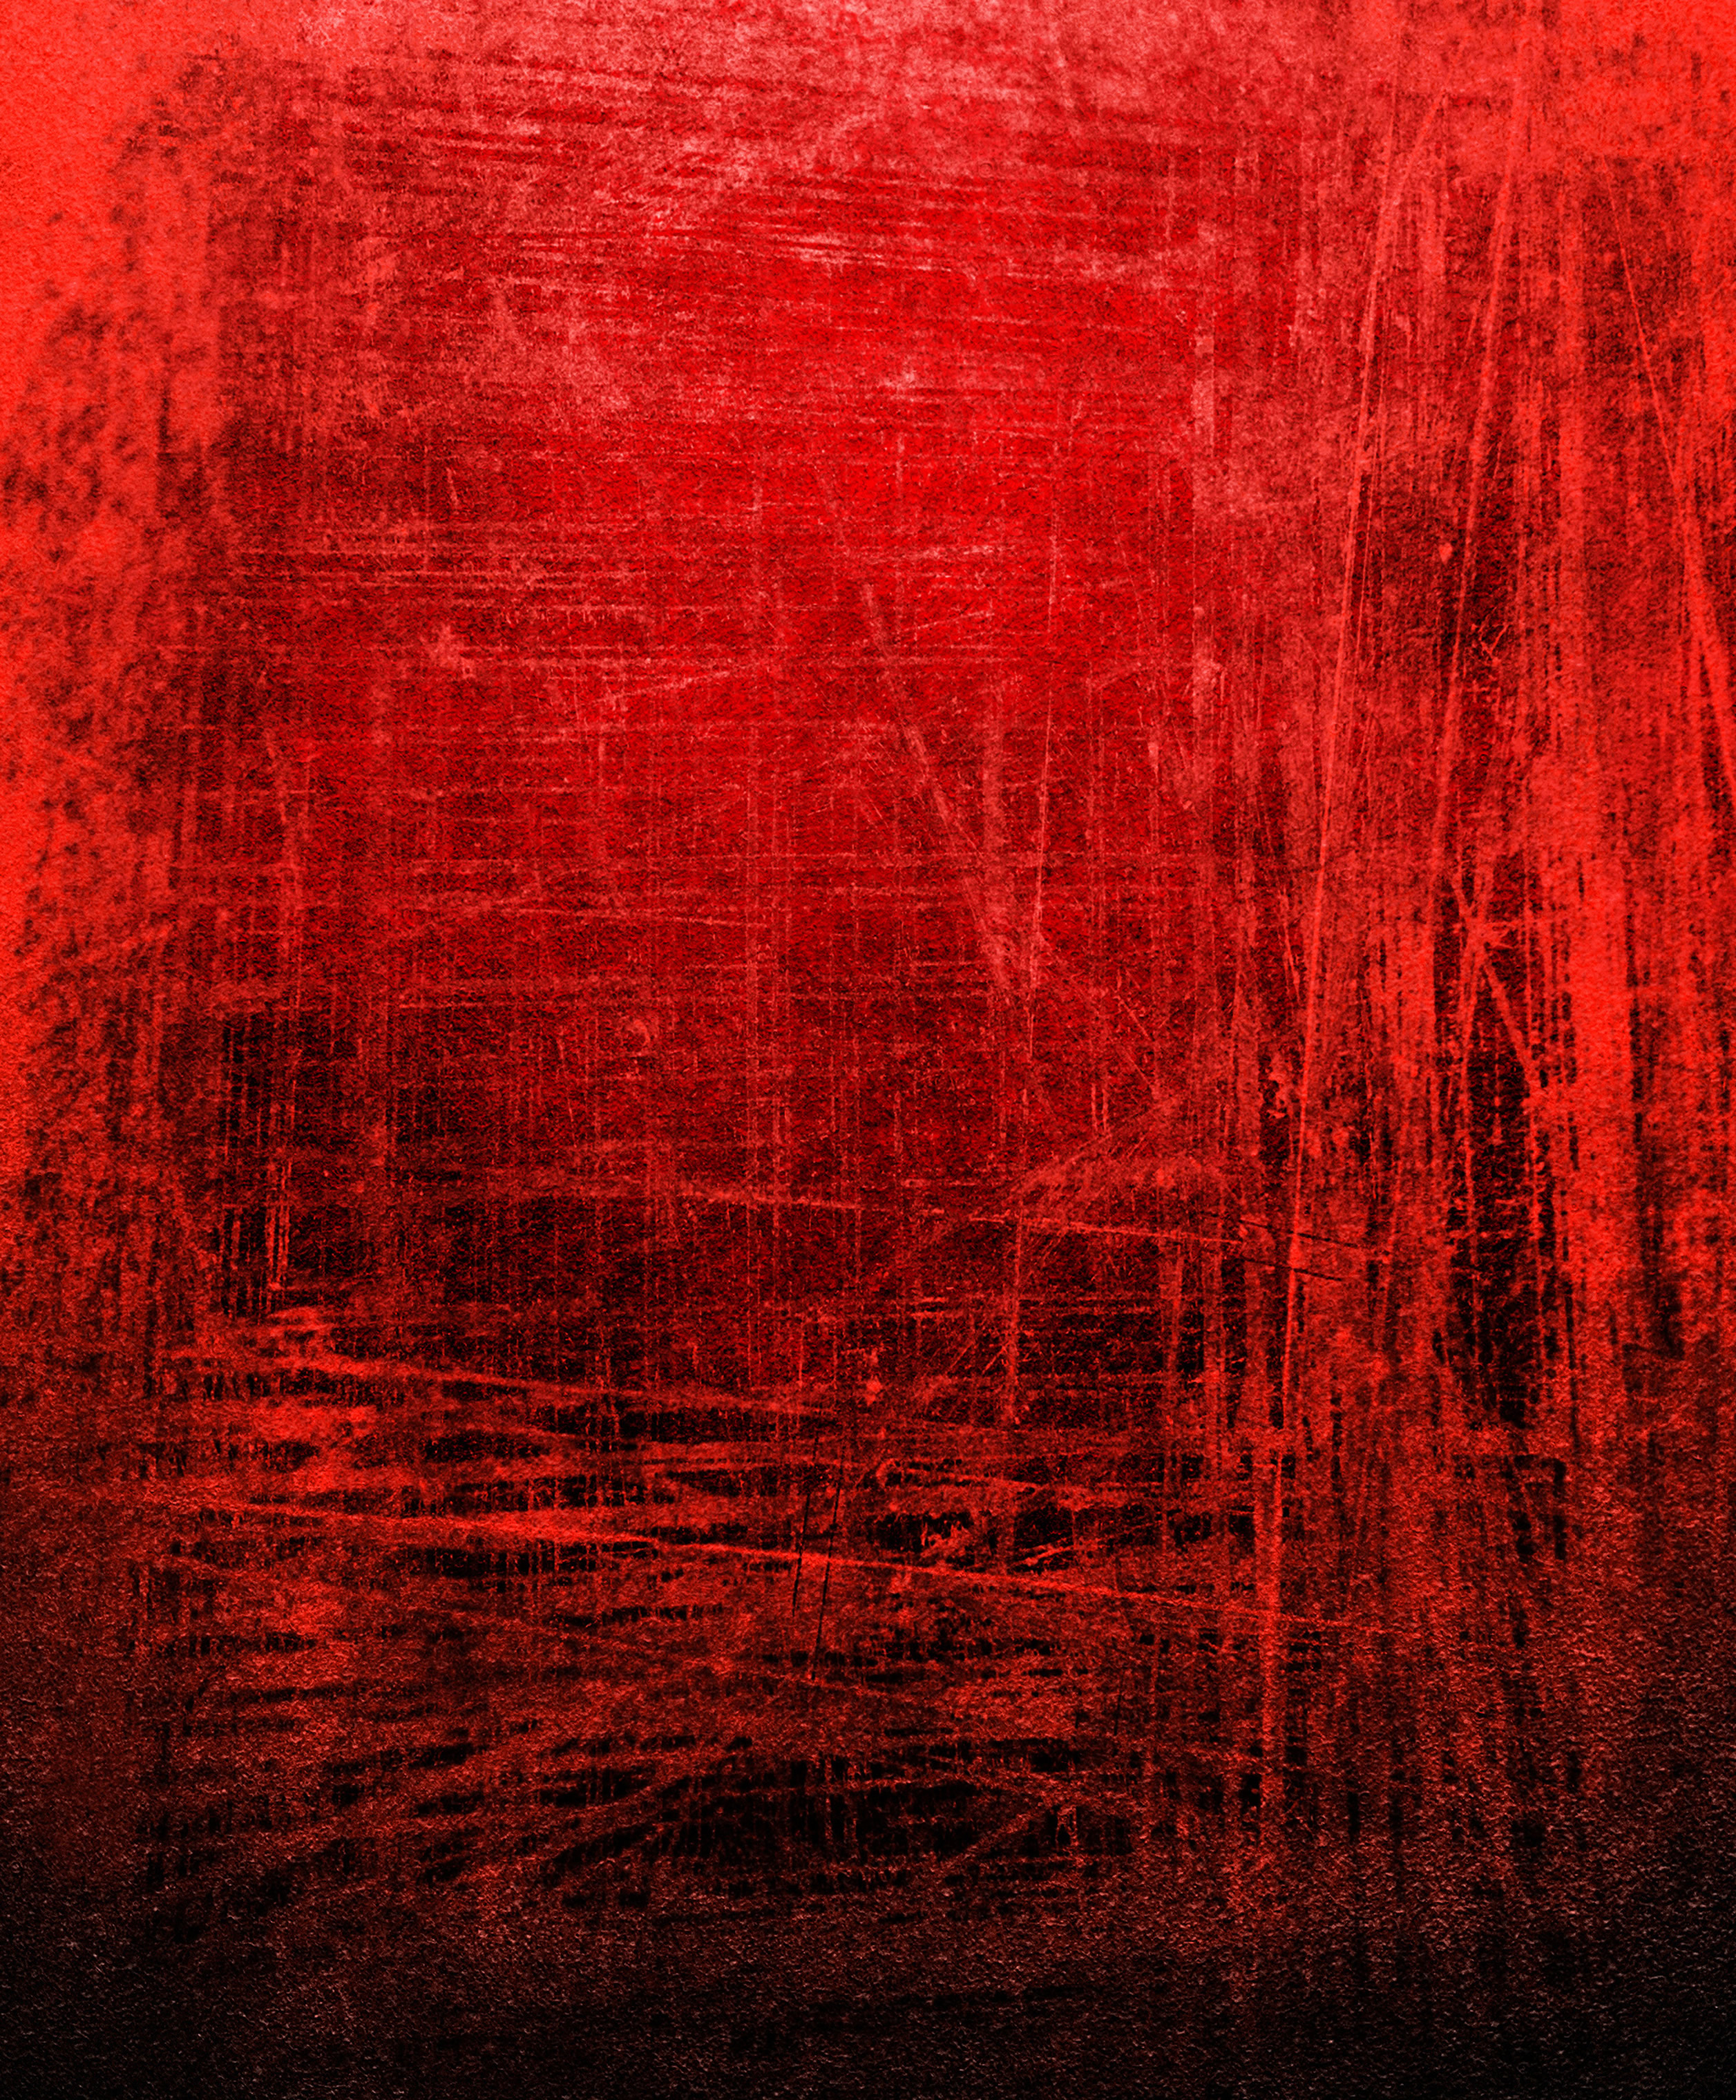 Tone And Texture In Art : Red paint texture paints background download photo